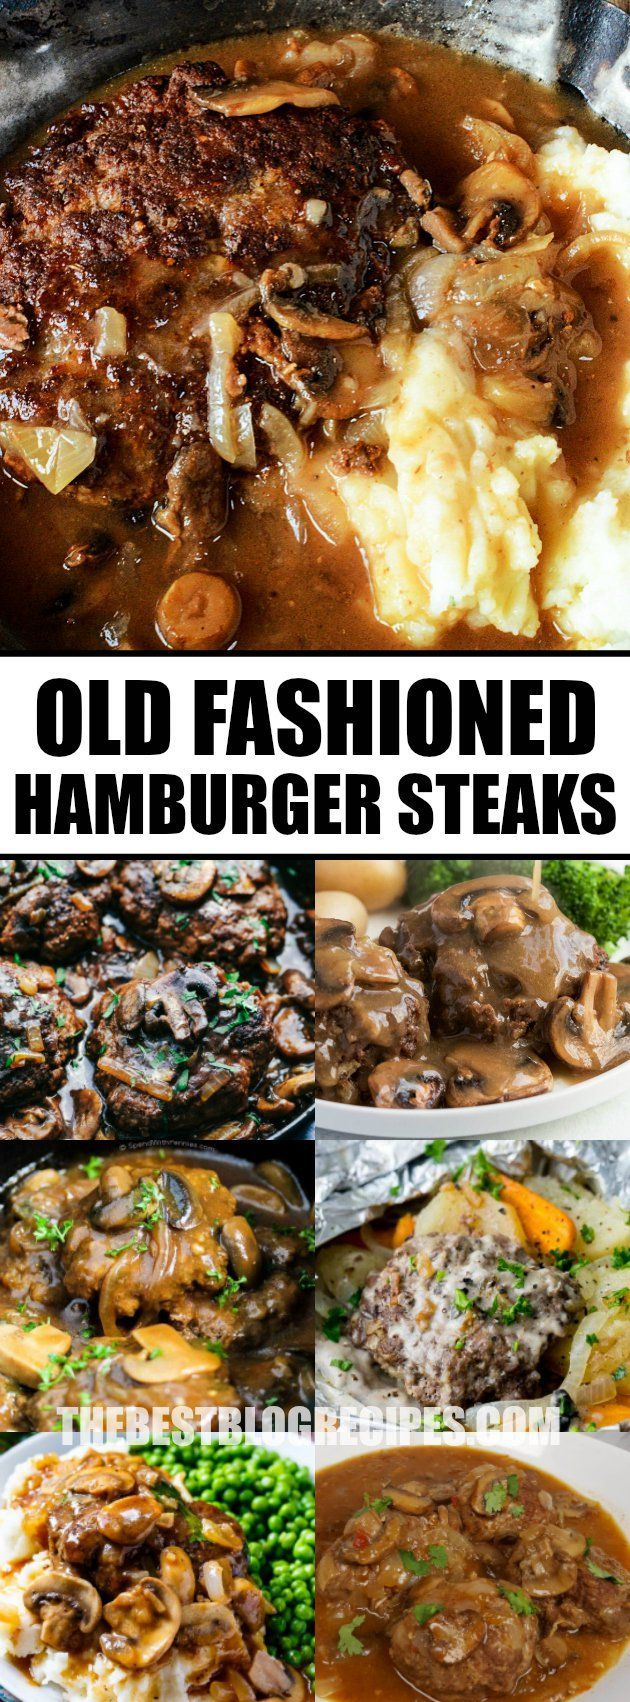 Old Fashioned Hamburger Steaks with Mushroom Onion Gravy have the perfect combination of ingredients and seasonings that turn into one delicious dinner! via @bestblogrecipes